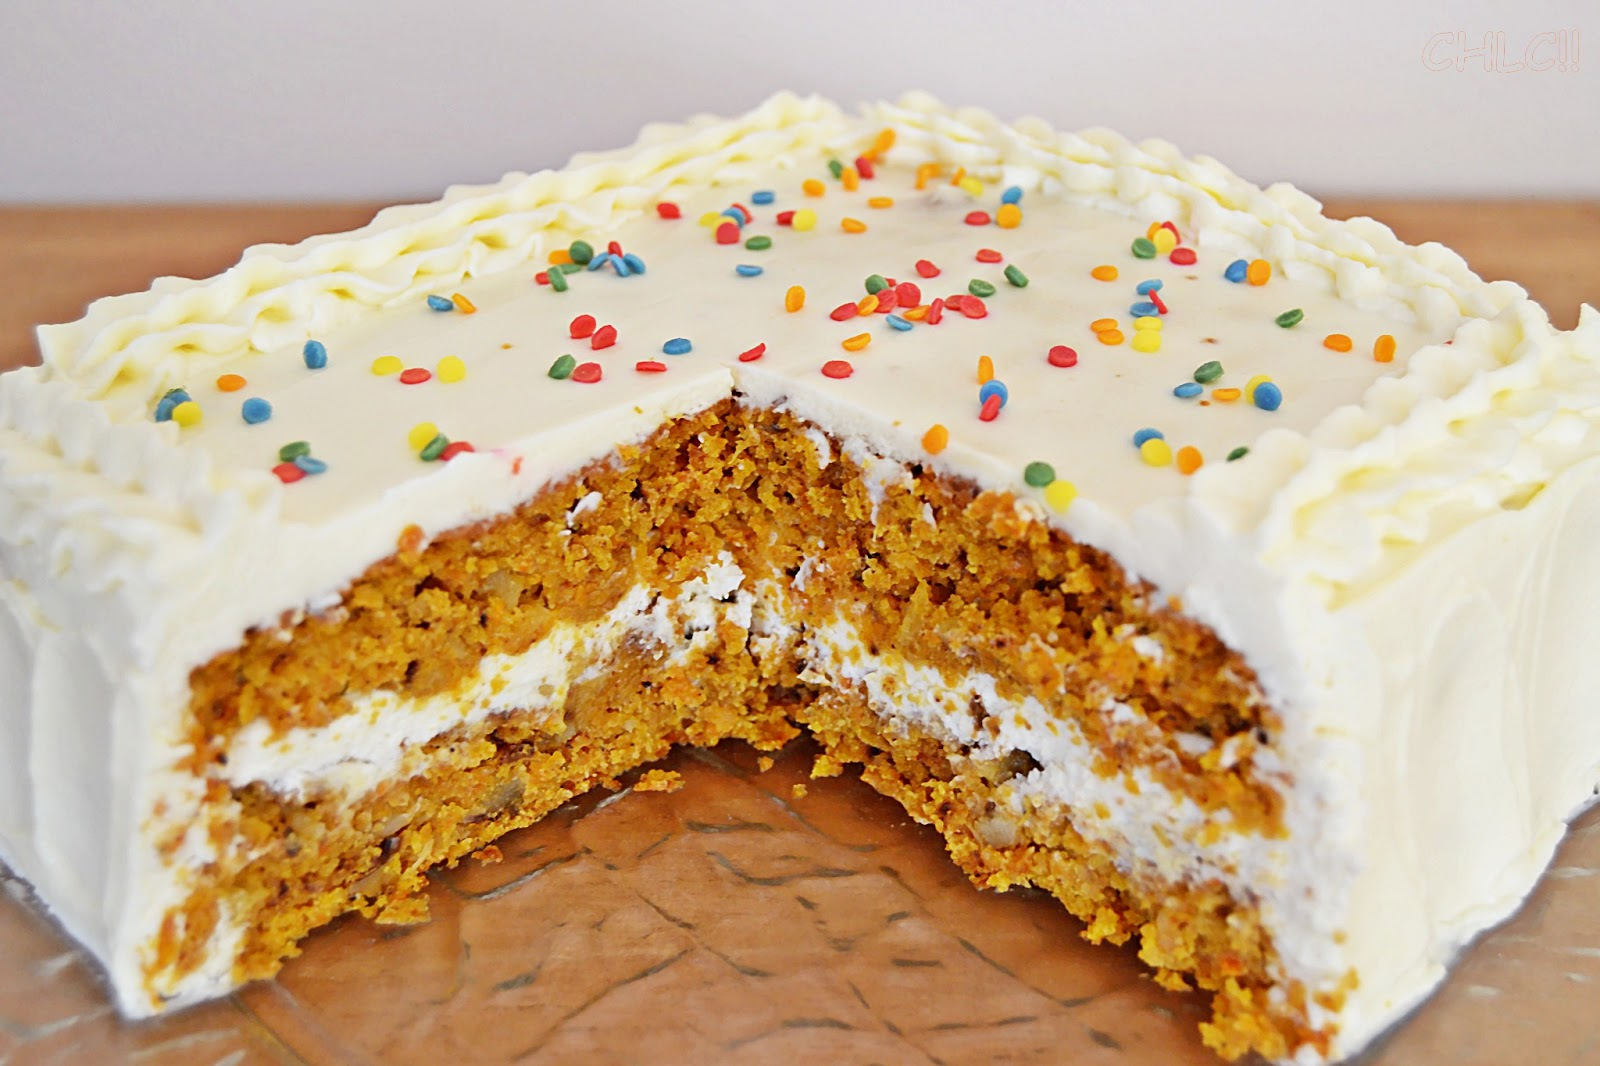 Carrot Cake As Comfort Food